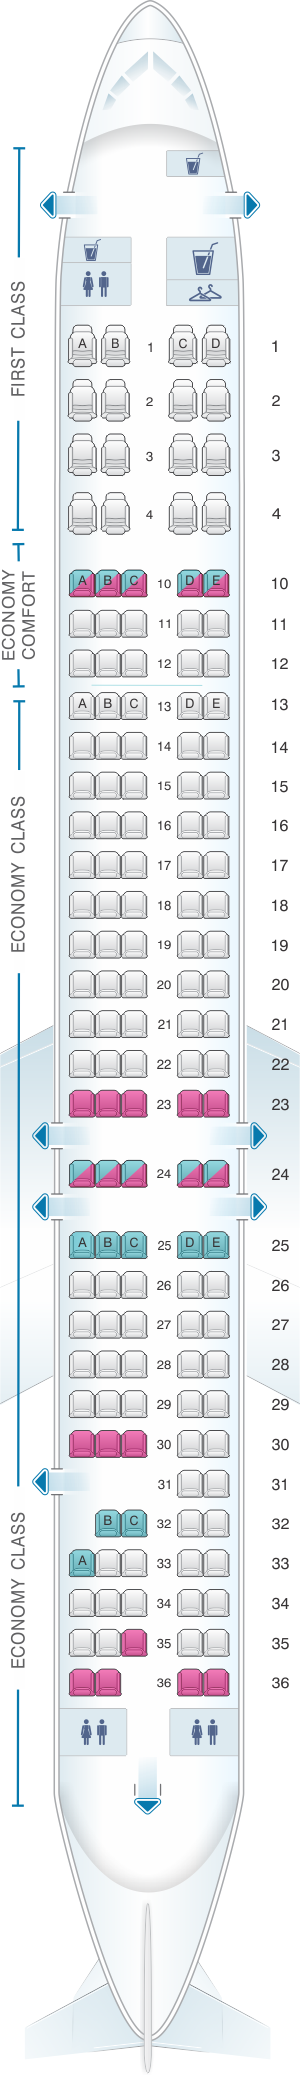 Seat map for Delta Airlines McDonnell Douglas MD 88